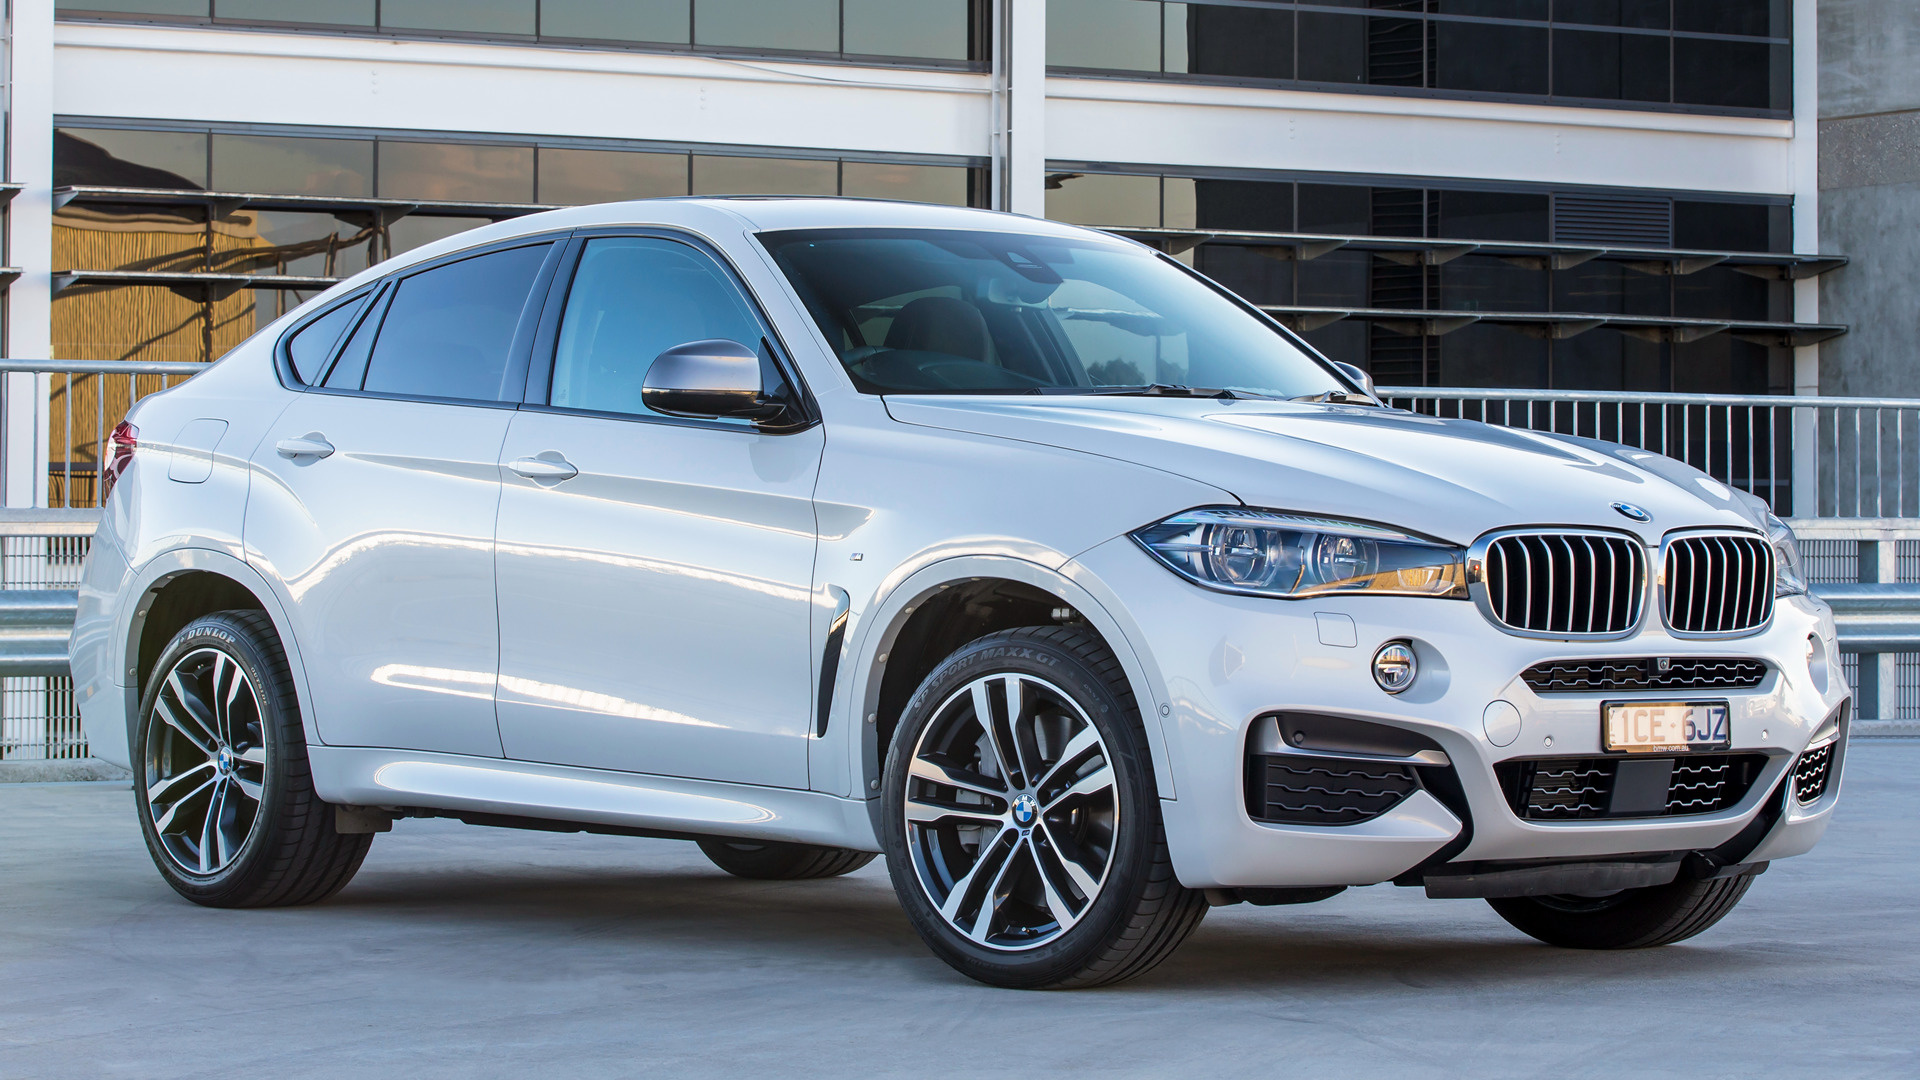 2015 Bmw X6 M50d Au Wallpapers And Hd Images Car Pixel